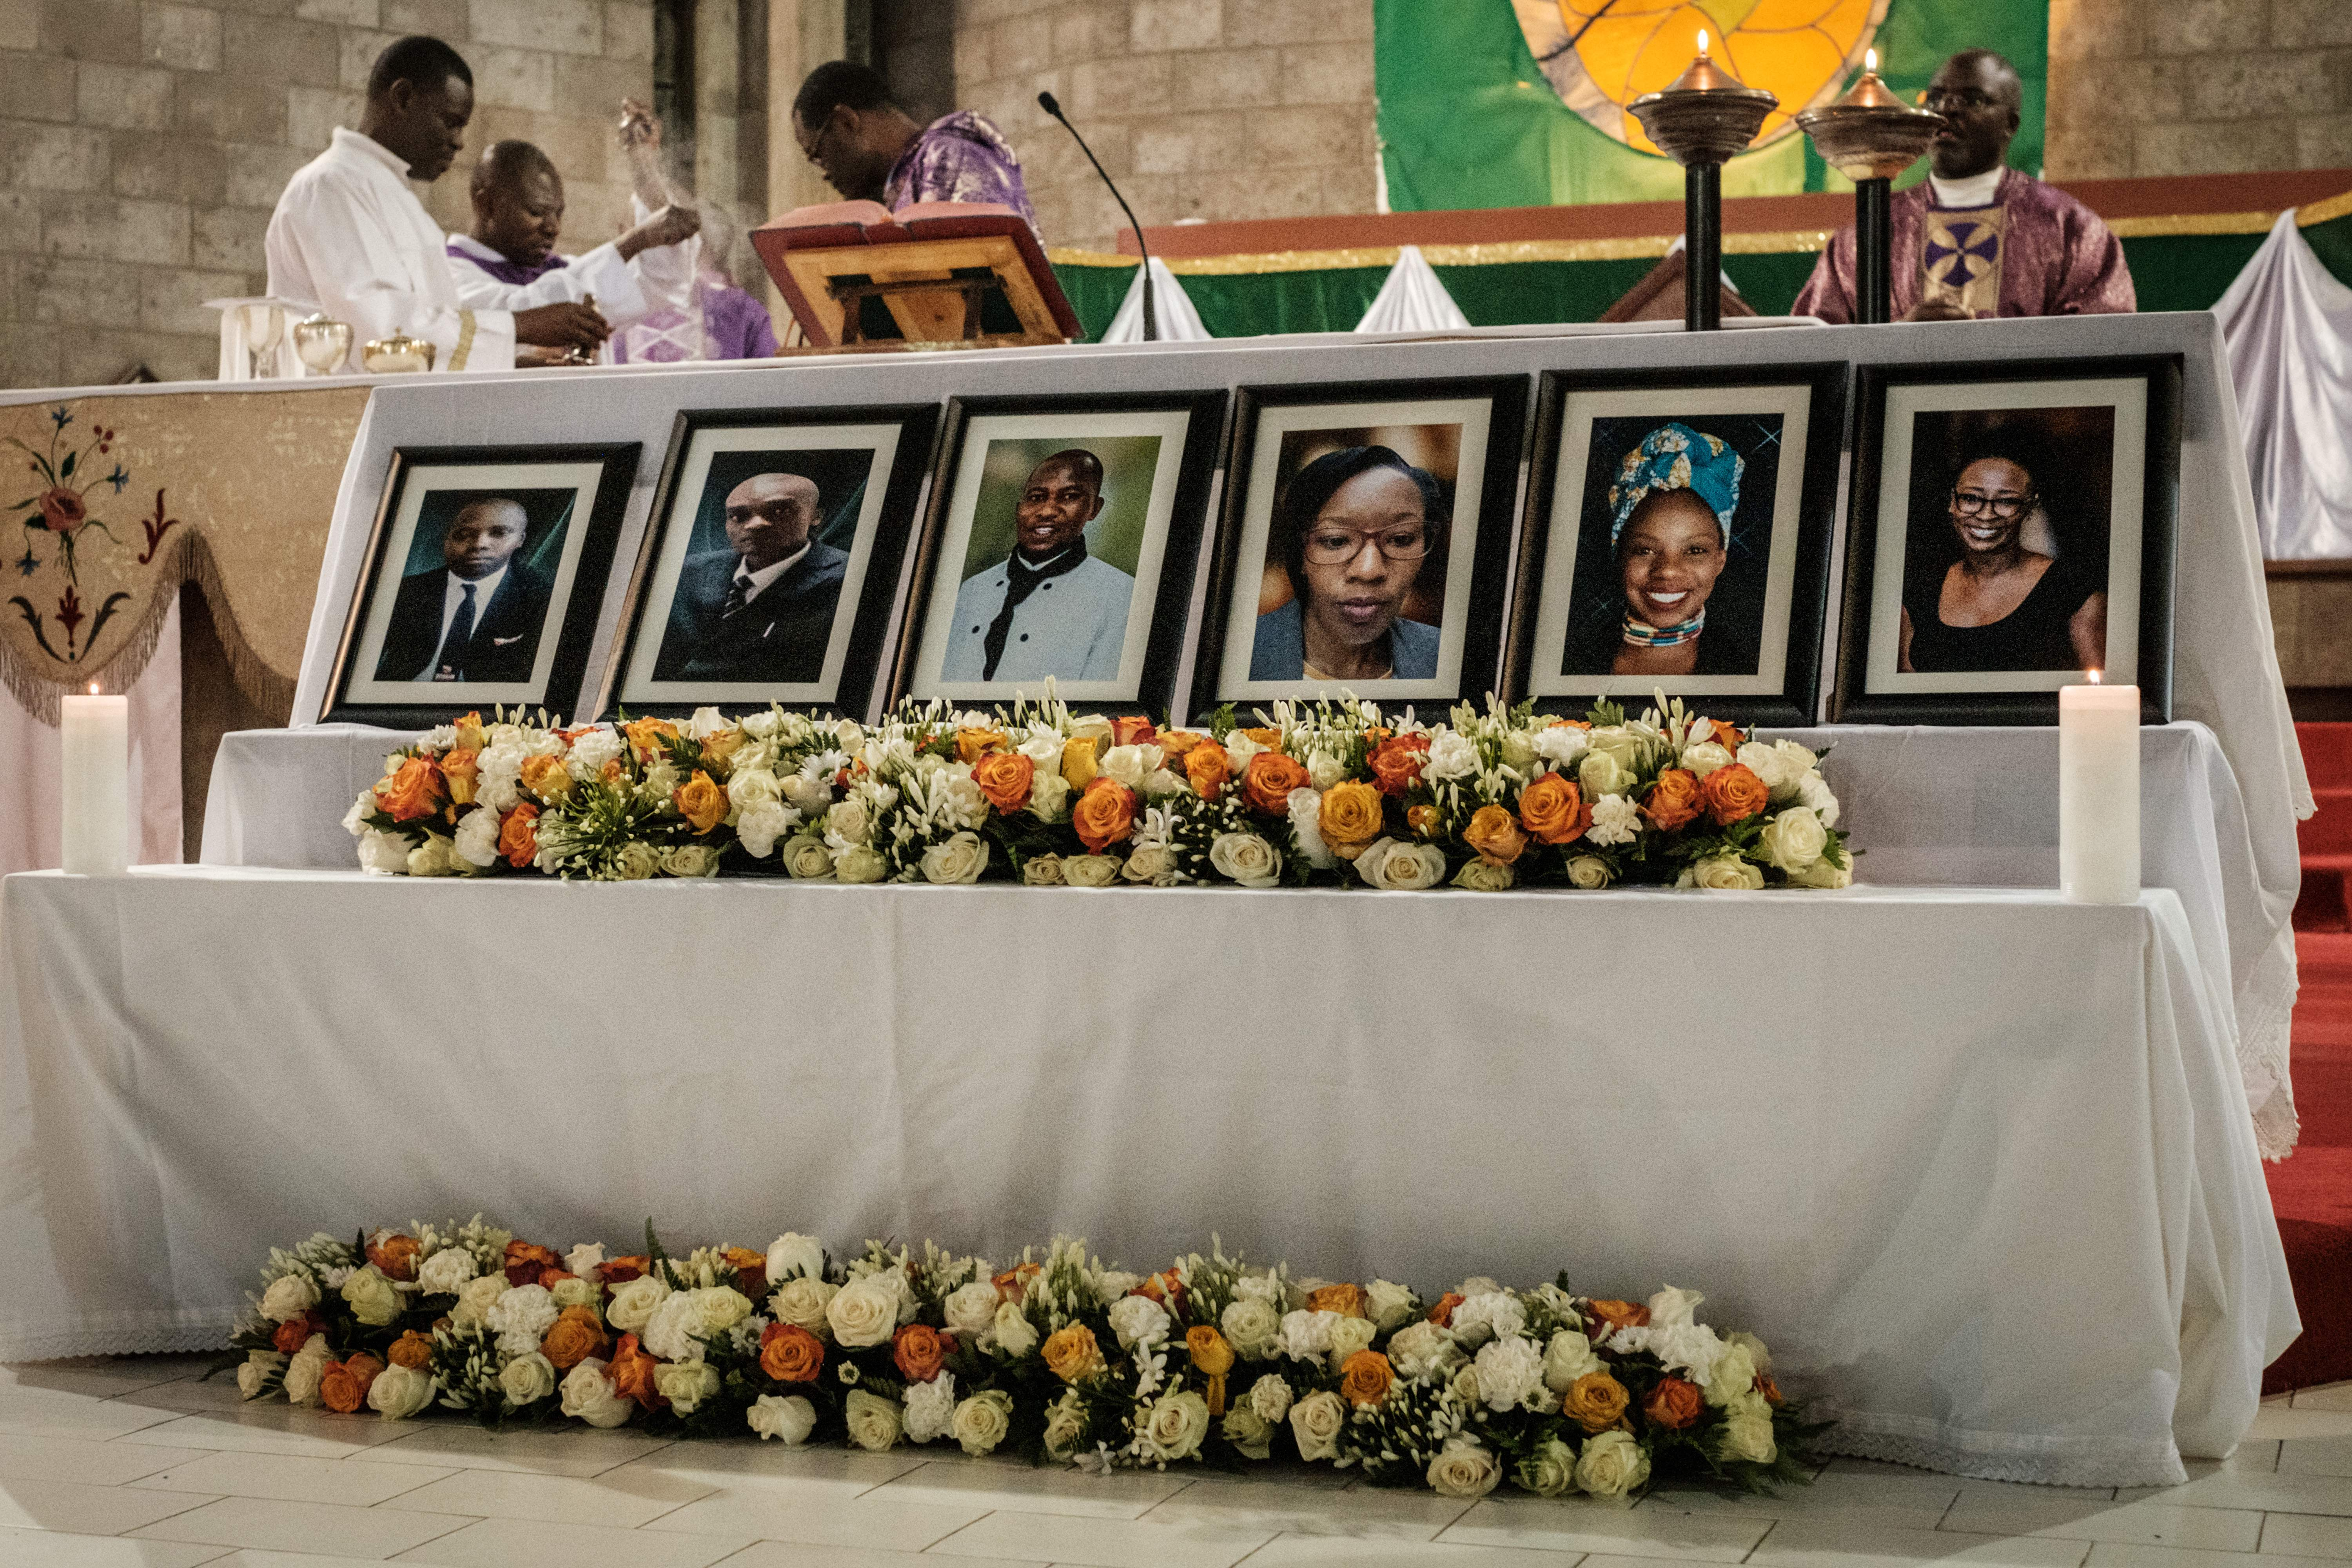 A priest celebrates the memorial service, on January 23, 2019, at the Consolata Shrine in Nairobi for six staff members of the Dusit hotel and office complex who were found dead following an attack where least 21 people were killed in a terror attack claimed by the Al-Qaeda-linked Somali group Al-Shabaab on the Dusit hotel complex in Nairobi on January 15. (YASUYOSHI CHIBA/AFP via Getty Images)